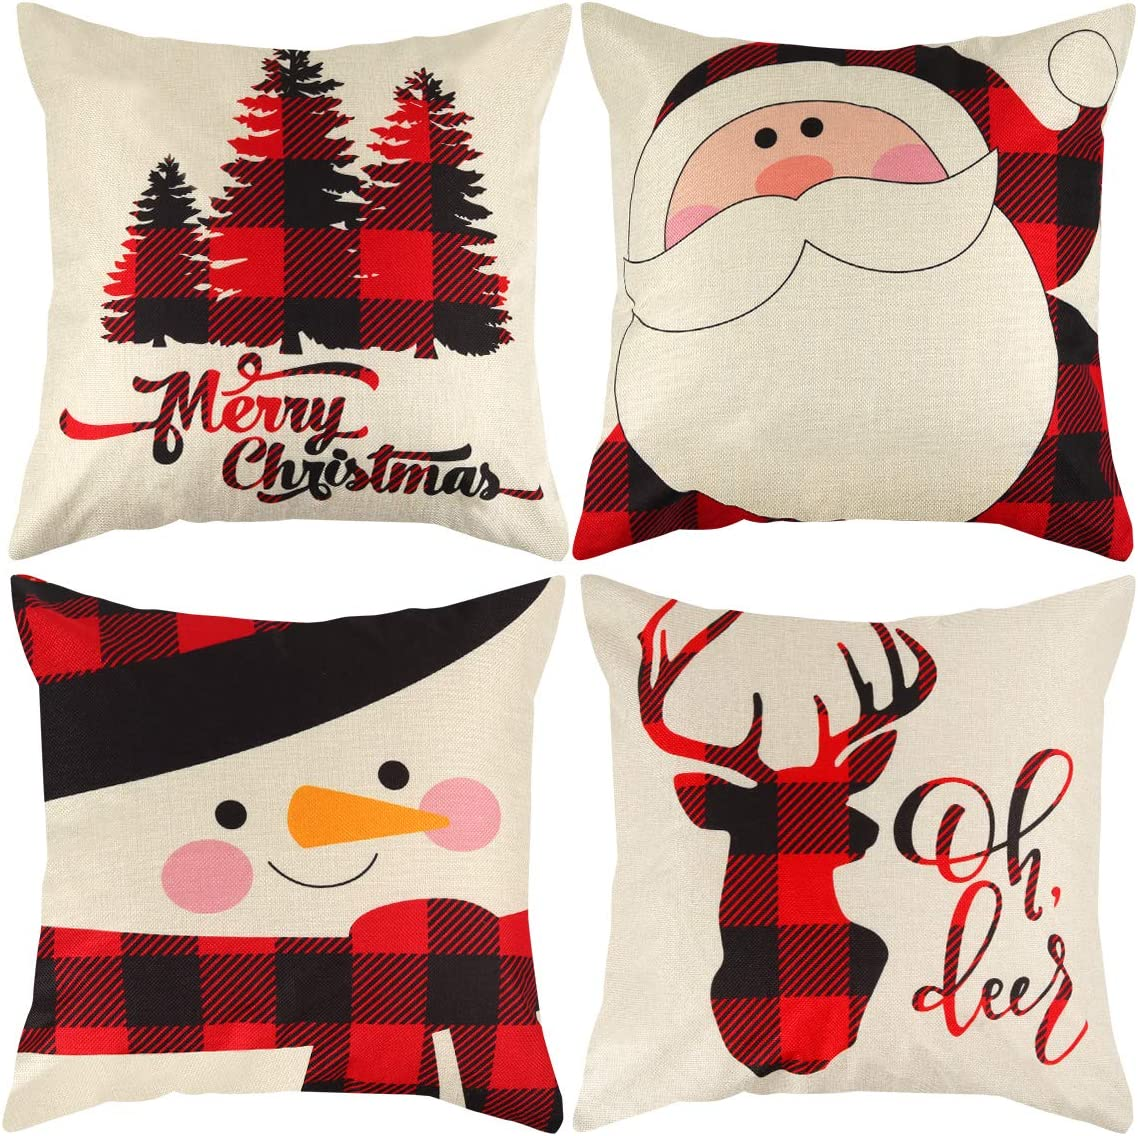 Mocoosy Christmas Pillow Covers 18 x 18 Inch, Christmas Pillow Cases Set of 4, Plaid Linen Decorative Throw Pillow Covers Santa Snowman Reindeer Square Pillowcase for Xmas Home Office Sofa Decor